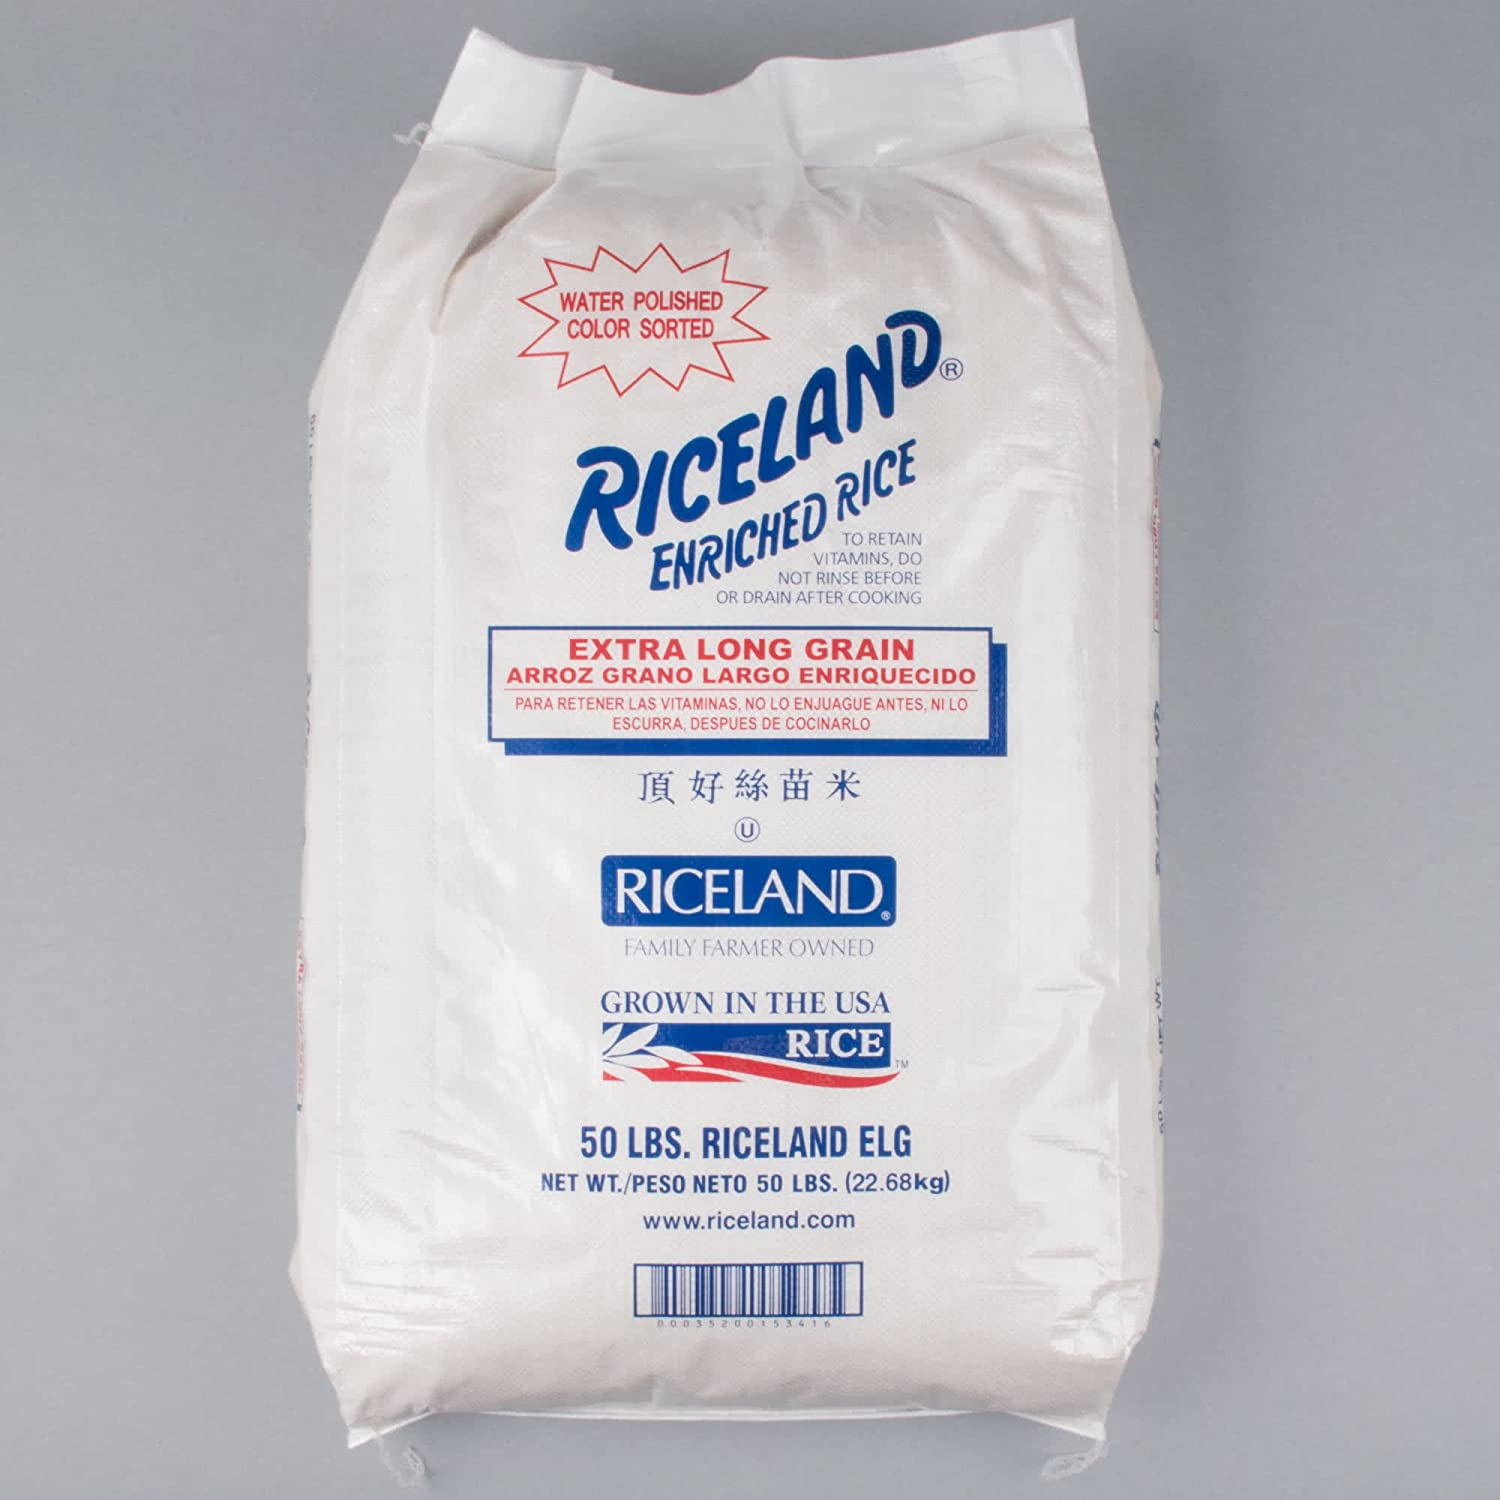 Amazon.com : Riceland Long Grain Rice Flour, 50 Pound : Grocery & Gourmet Food